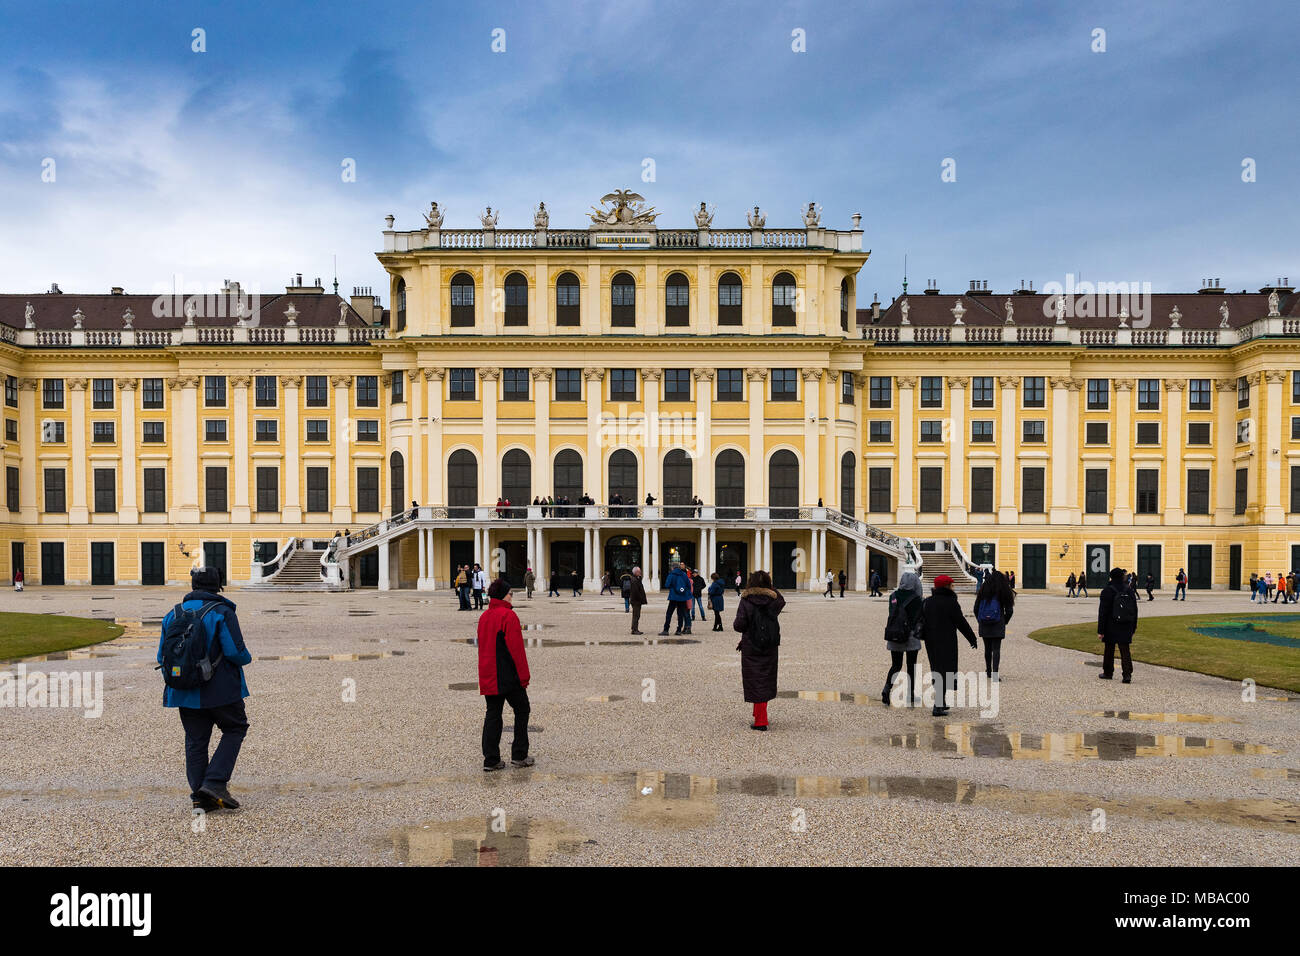 The garden park in Shonbrunn Palace (Wien) in rainy day with small puddles and large groups of tourists walking around - Stock Image